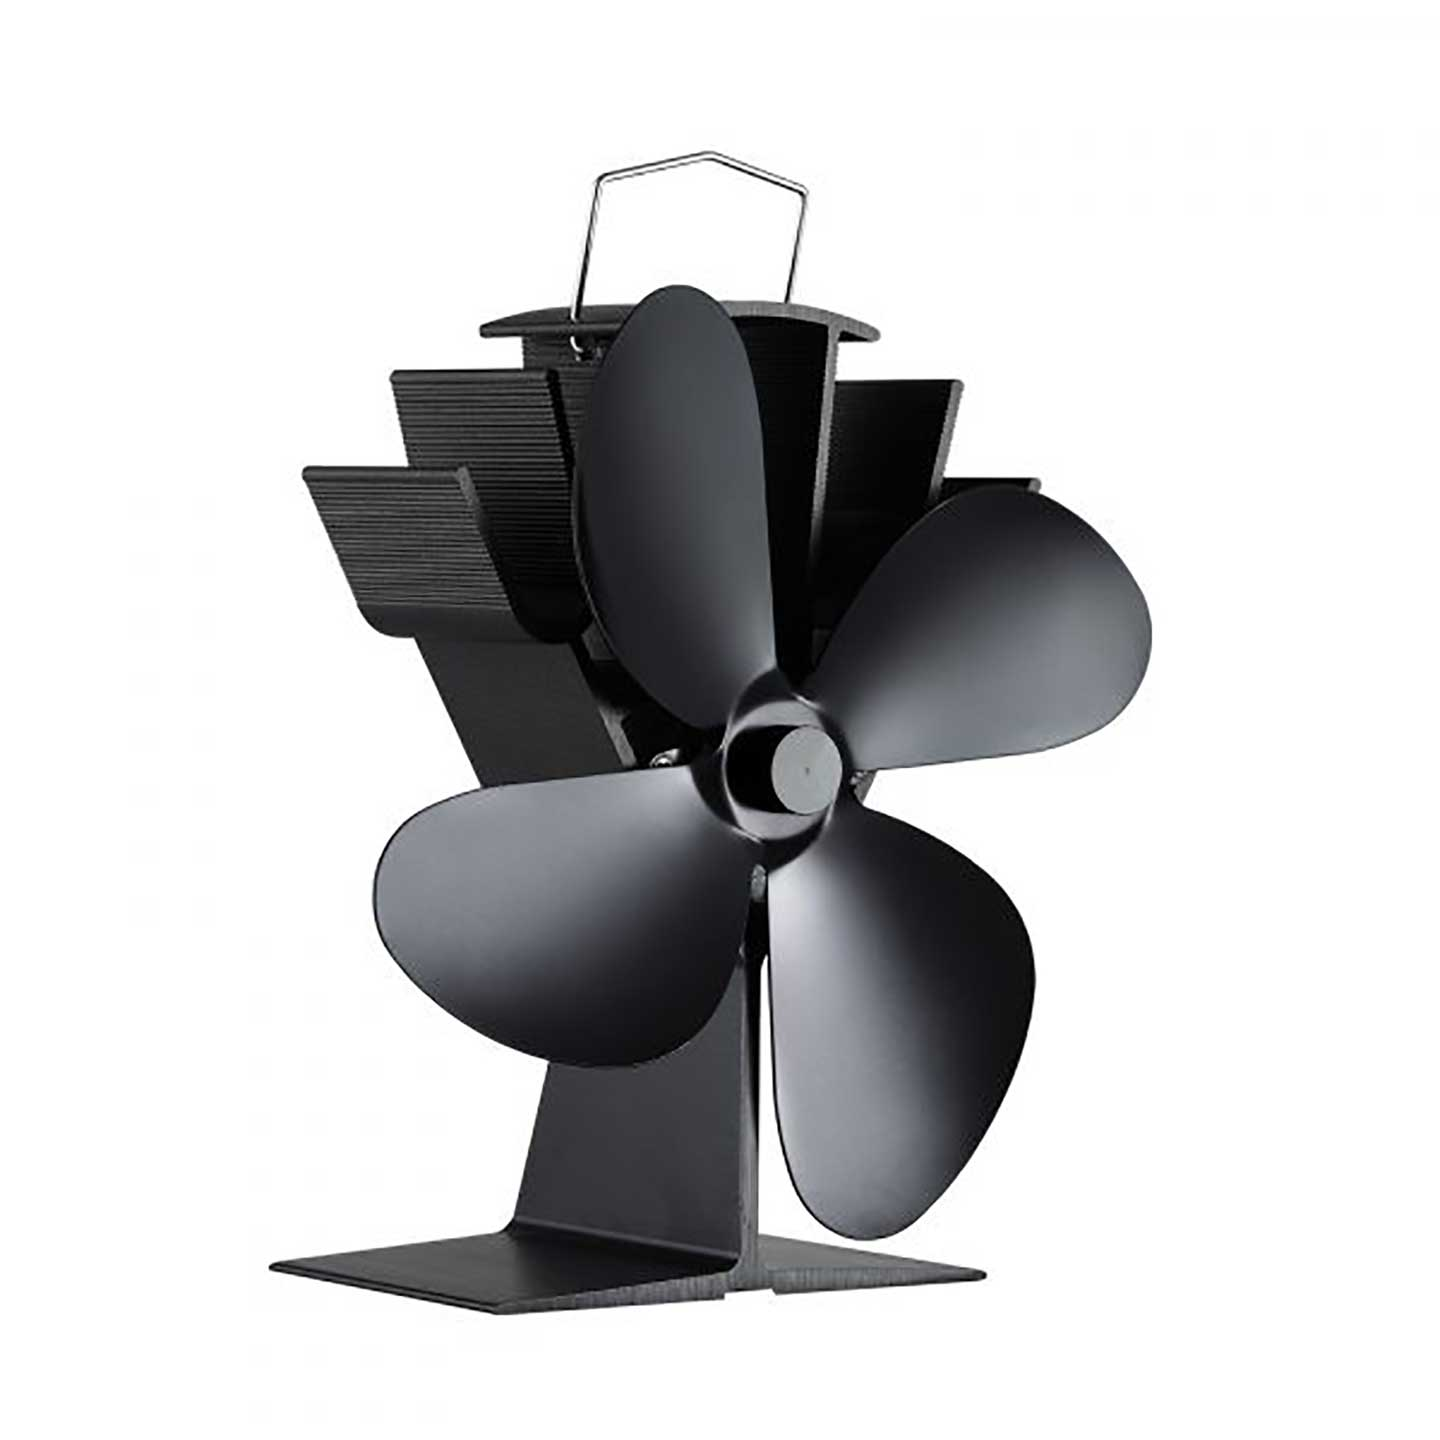 Heat Powered Stove Fan The Stove Site